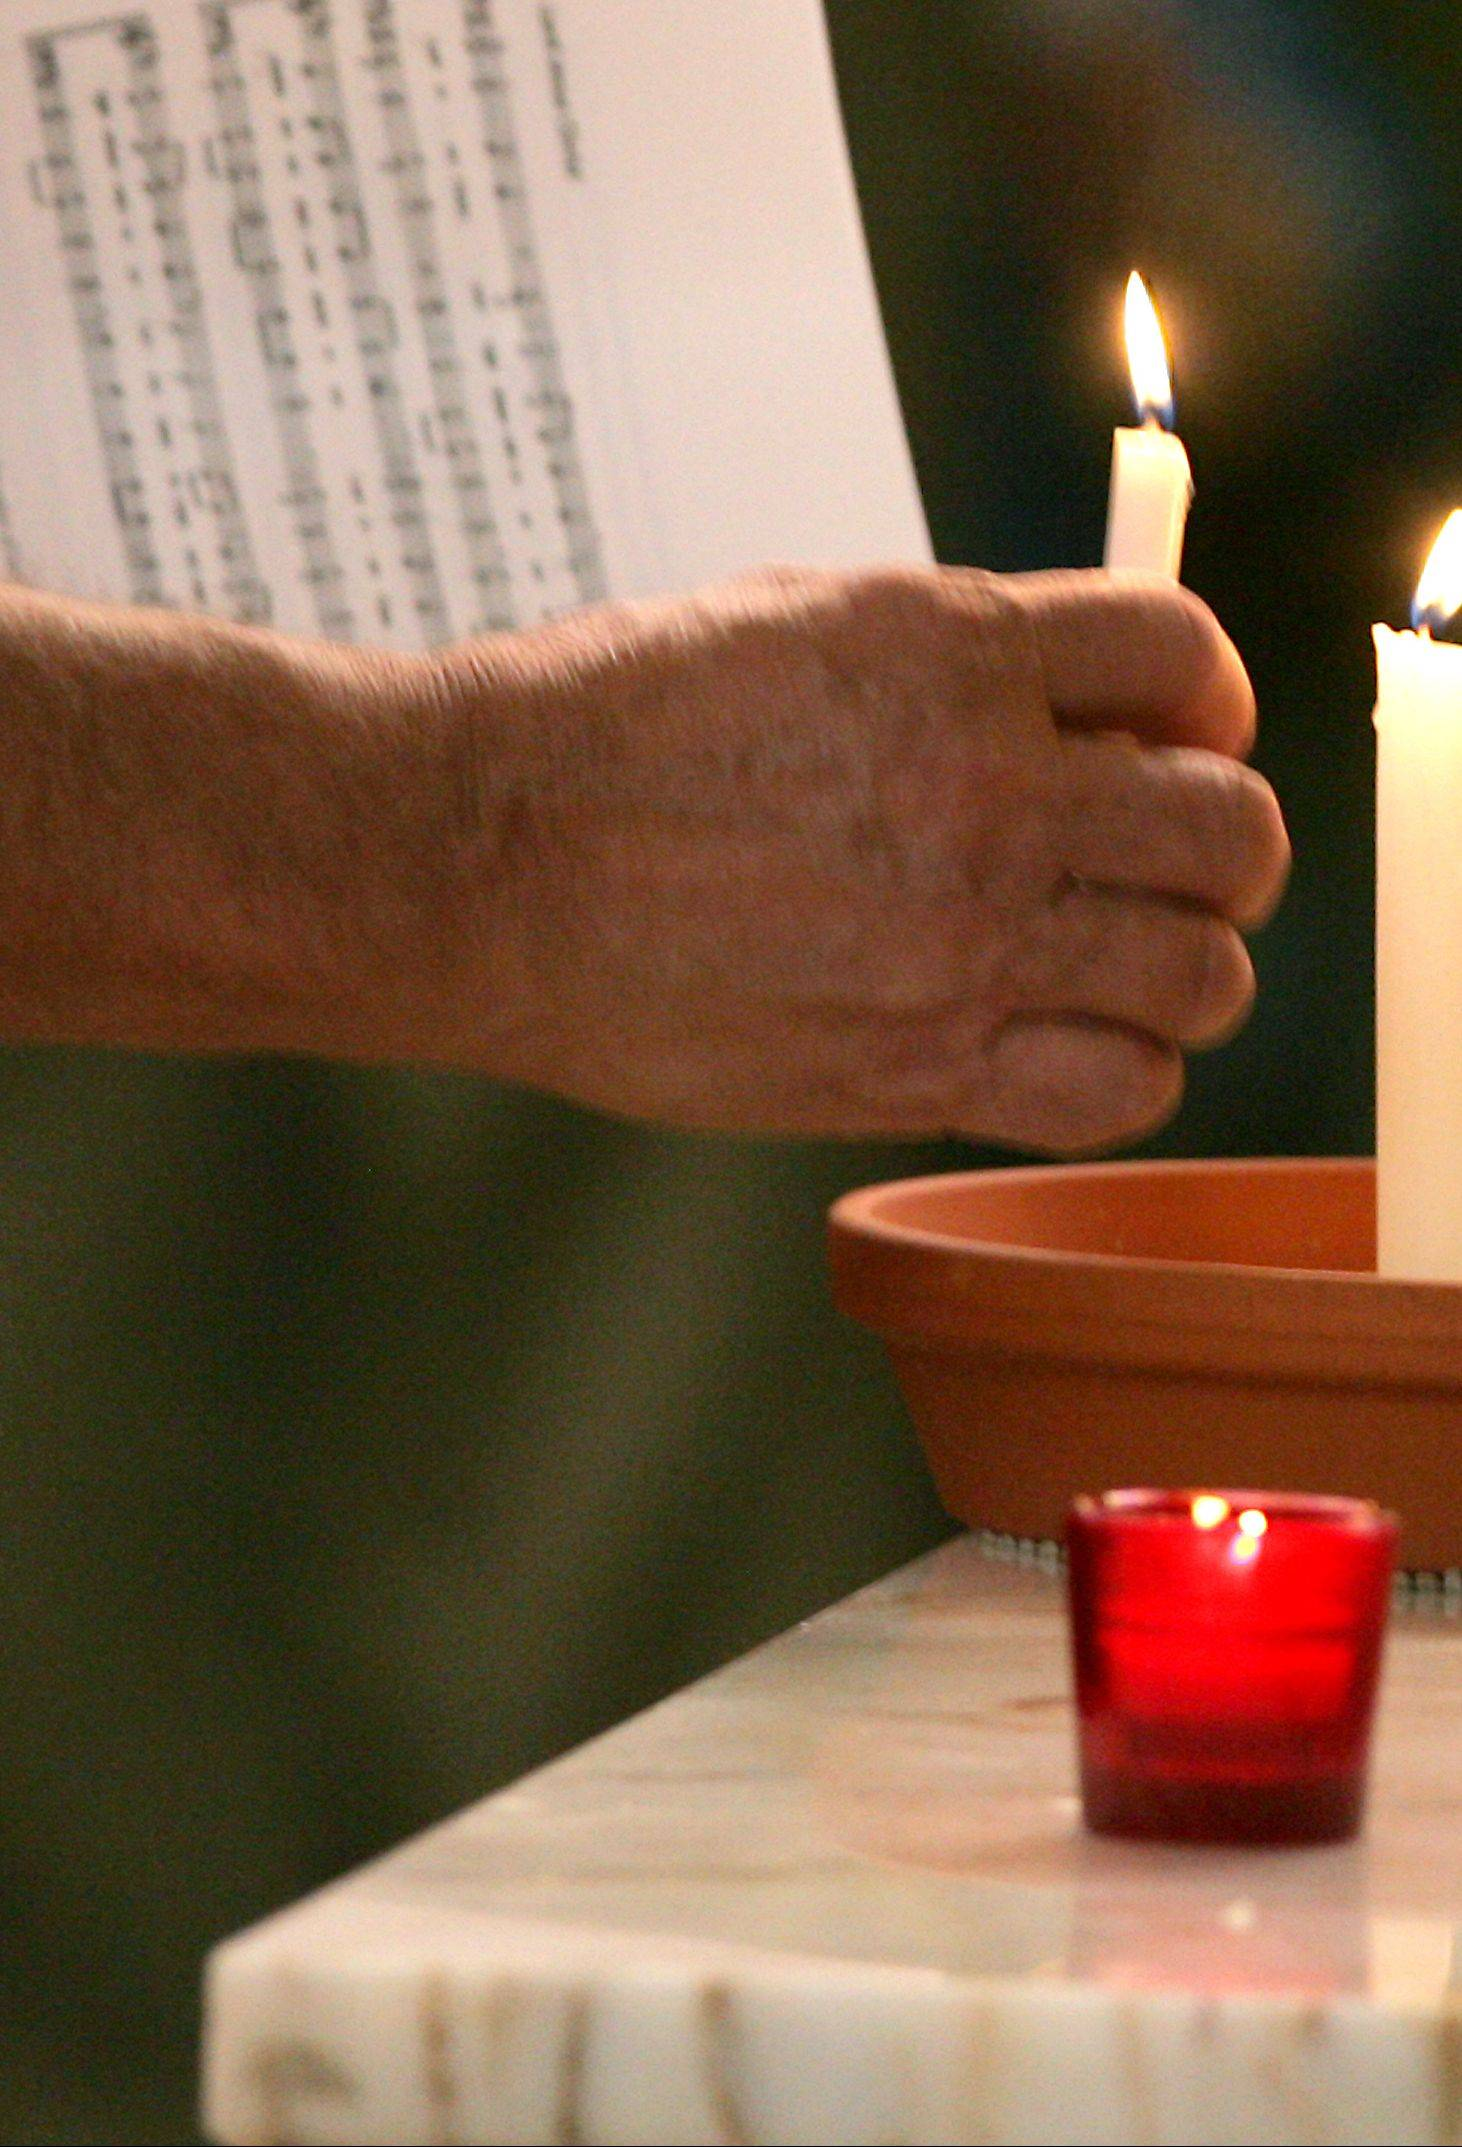 Candles are used during the Taizé service, symbolizing coming out of darkness and into life.